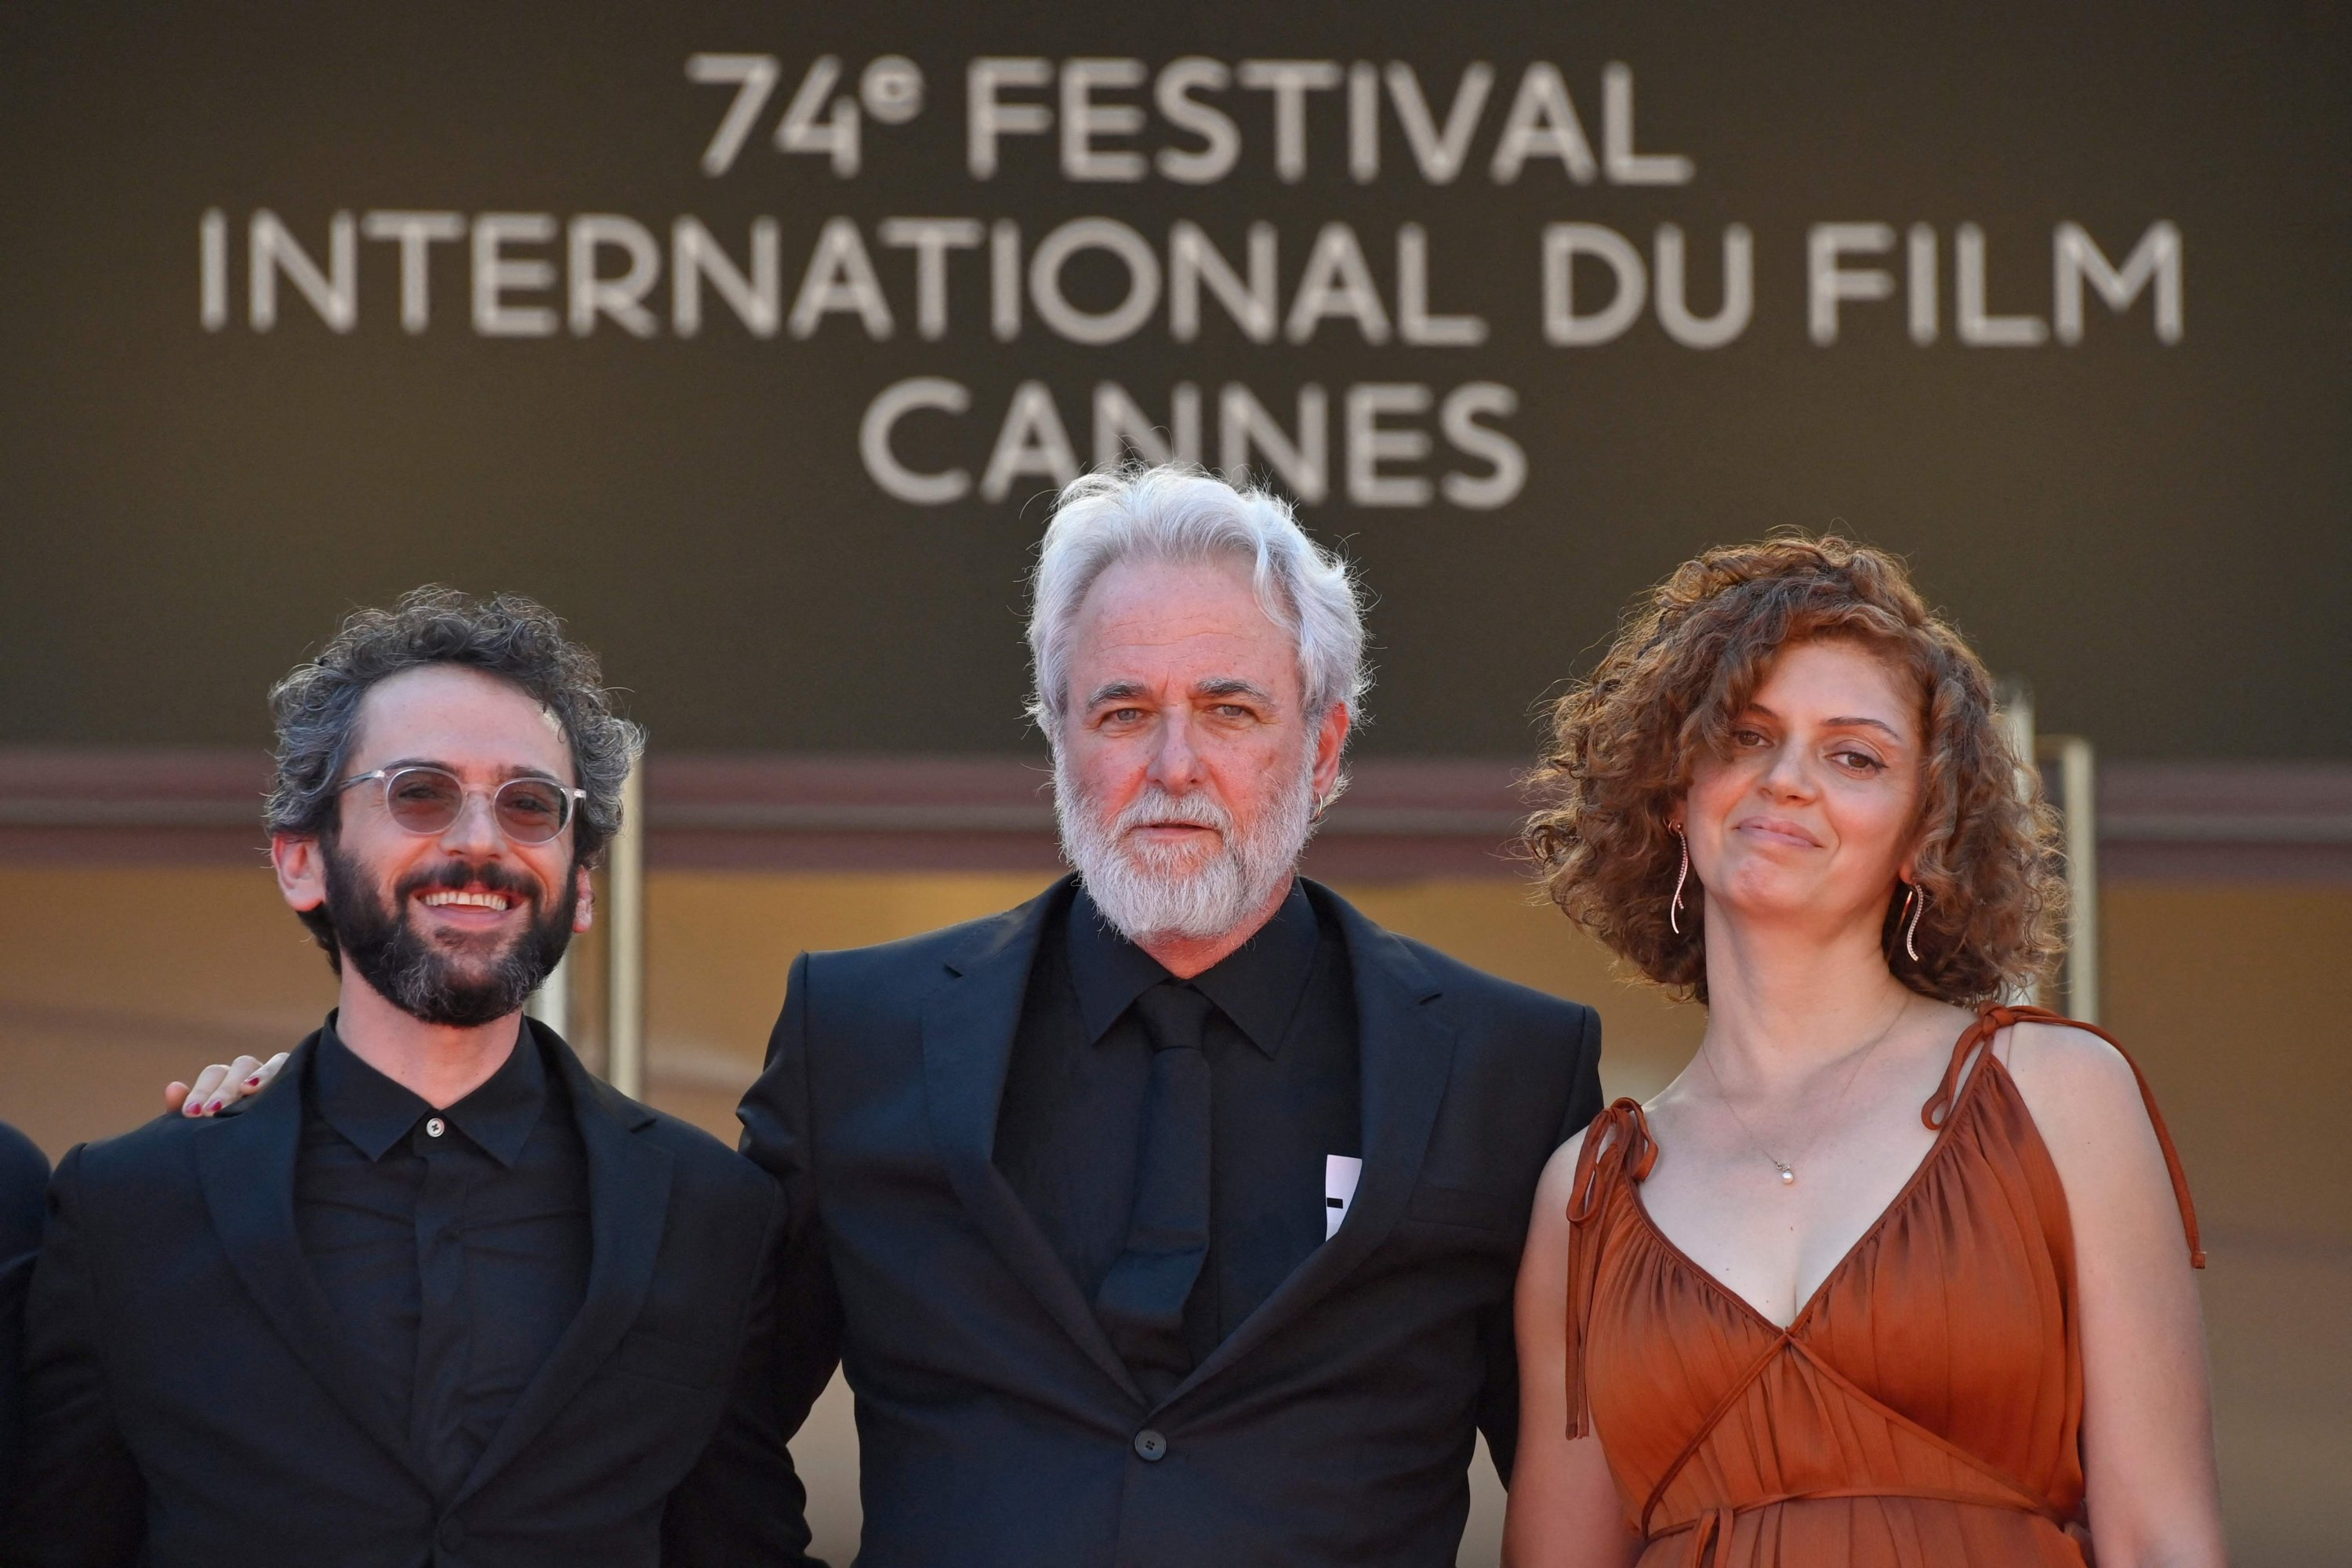 """Director Ari Folman (C) arrives with musician Ben Goldwasser (L) and comic strip writer Lena Guberman for the screening of the film """"Where Is Anne Frank"""" at the 74th Cannes Film Festival in Cannes, France, July 9, 2021. (AFP Photo)"""